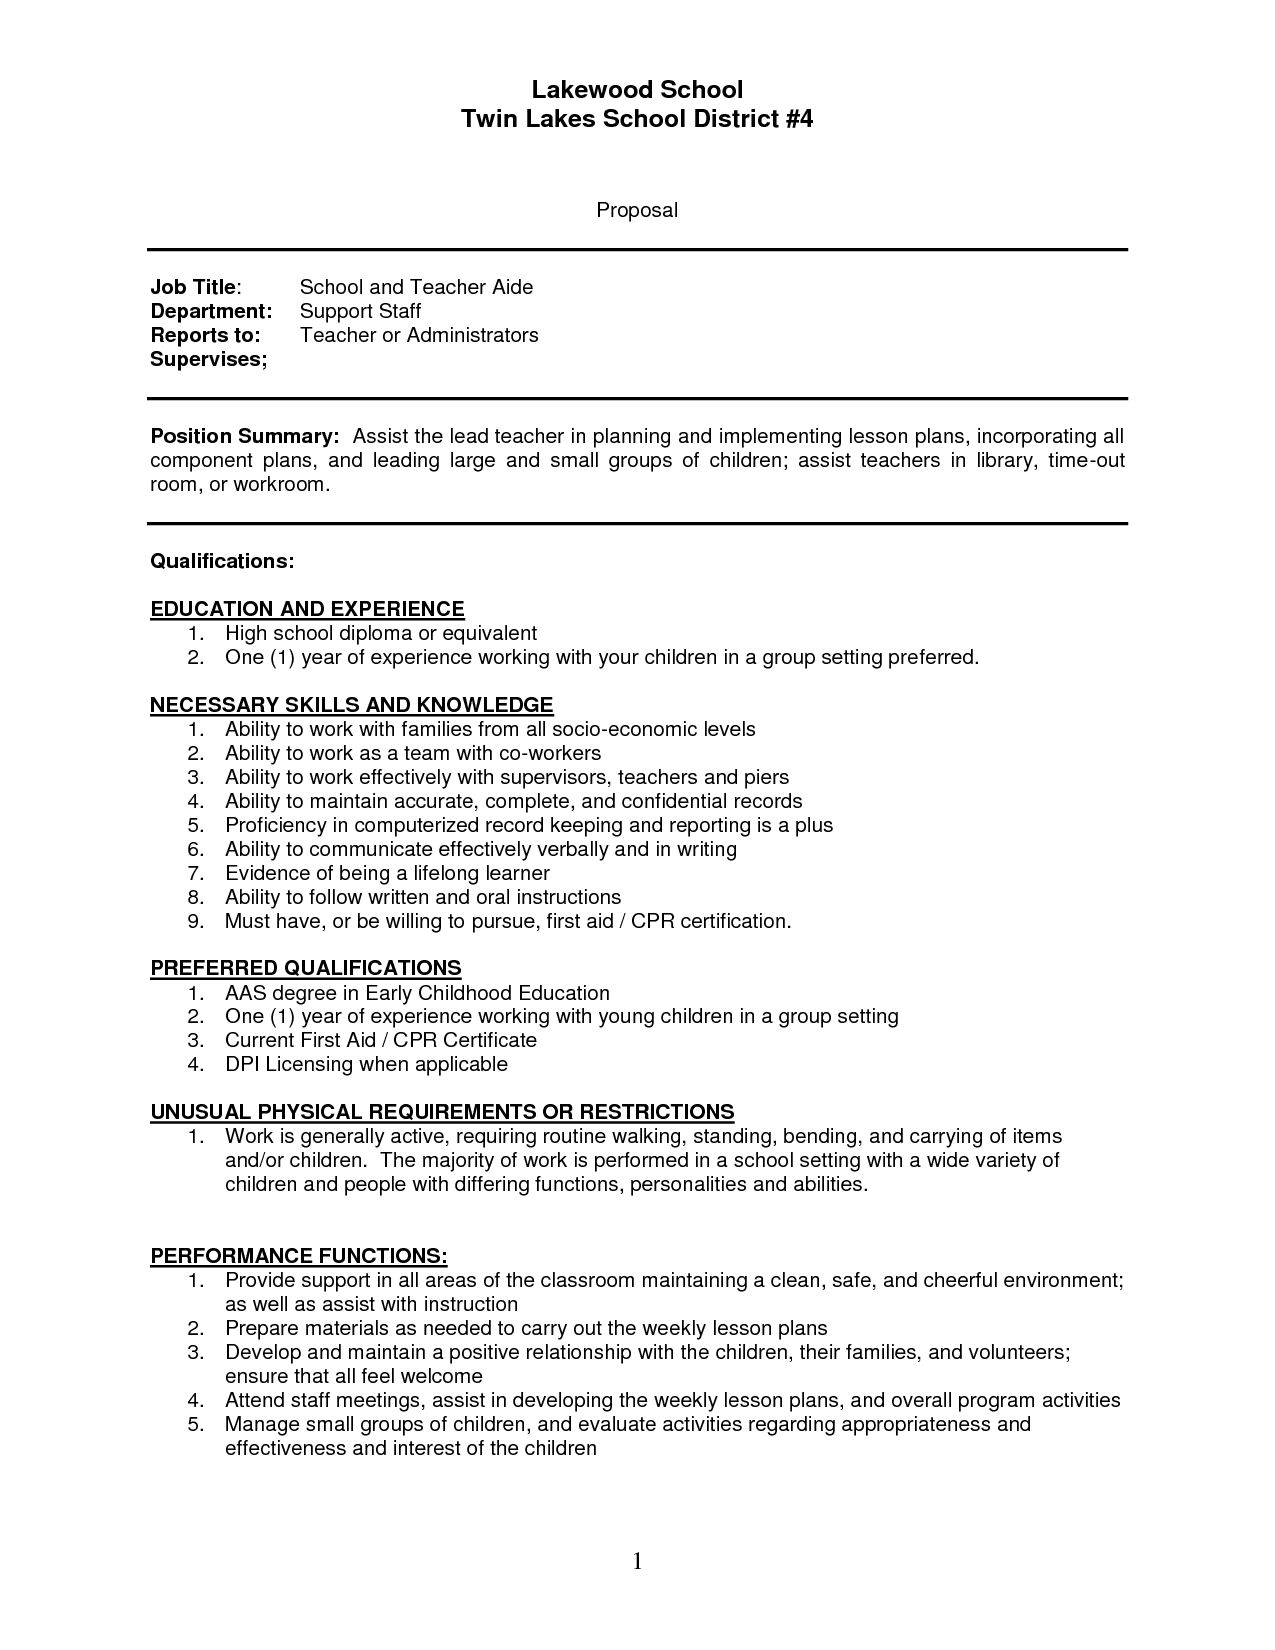 Librarian Resume Examples Sample Resume Teachers Aide Assistant Cover Letter Teacher Sap .